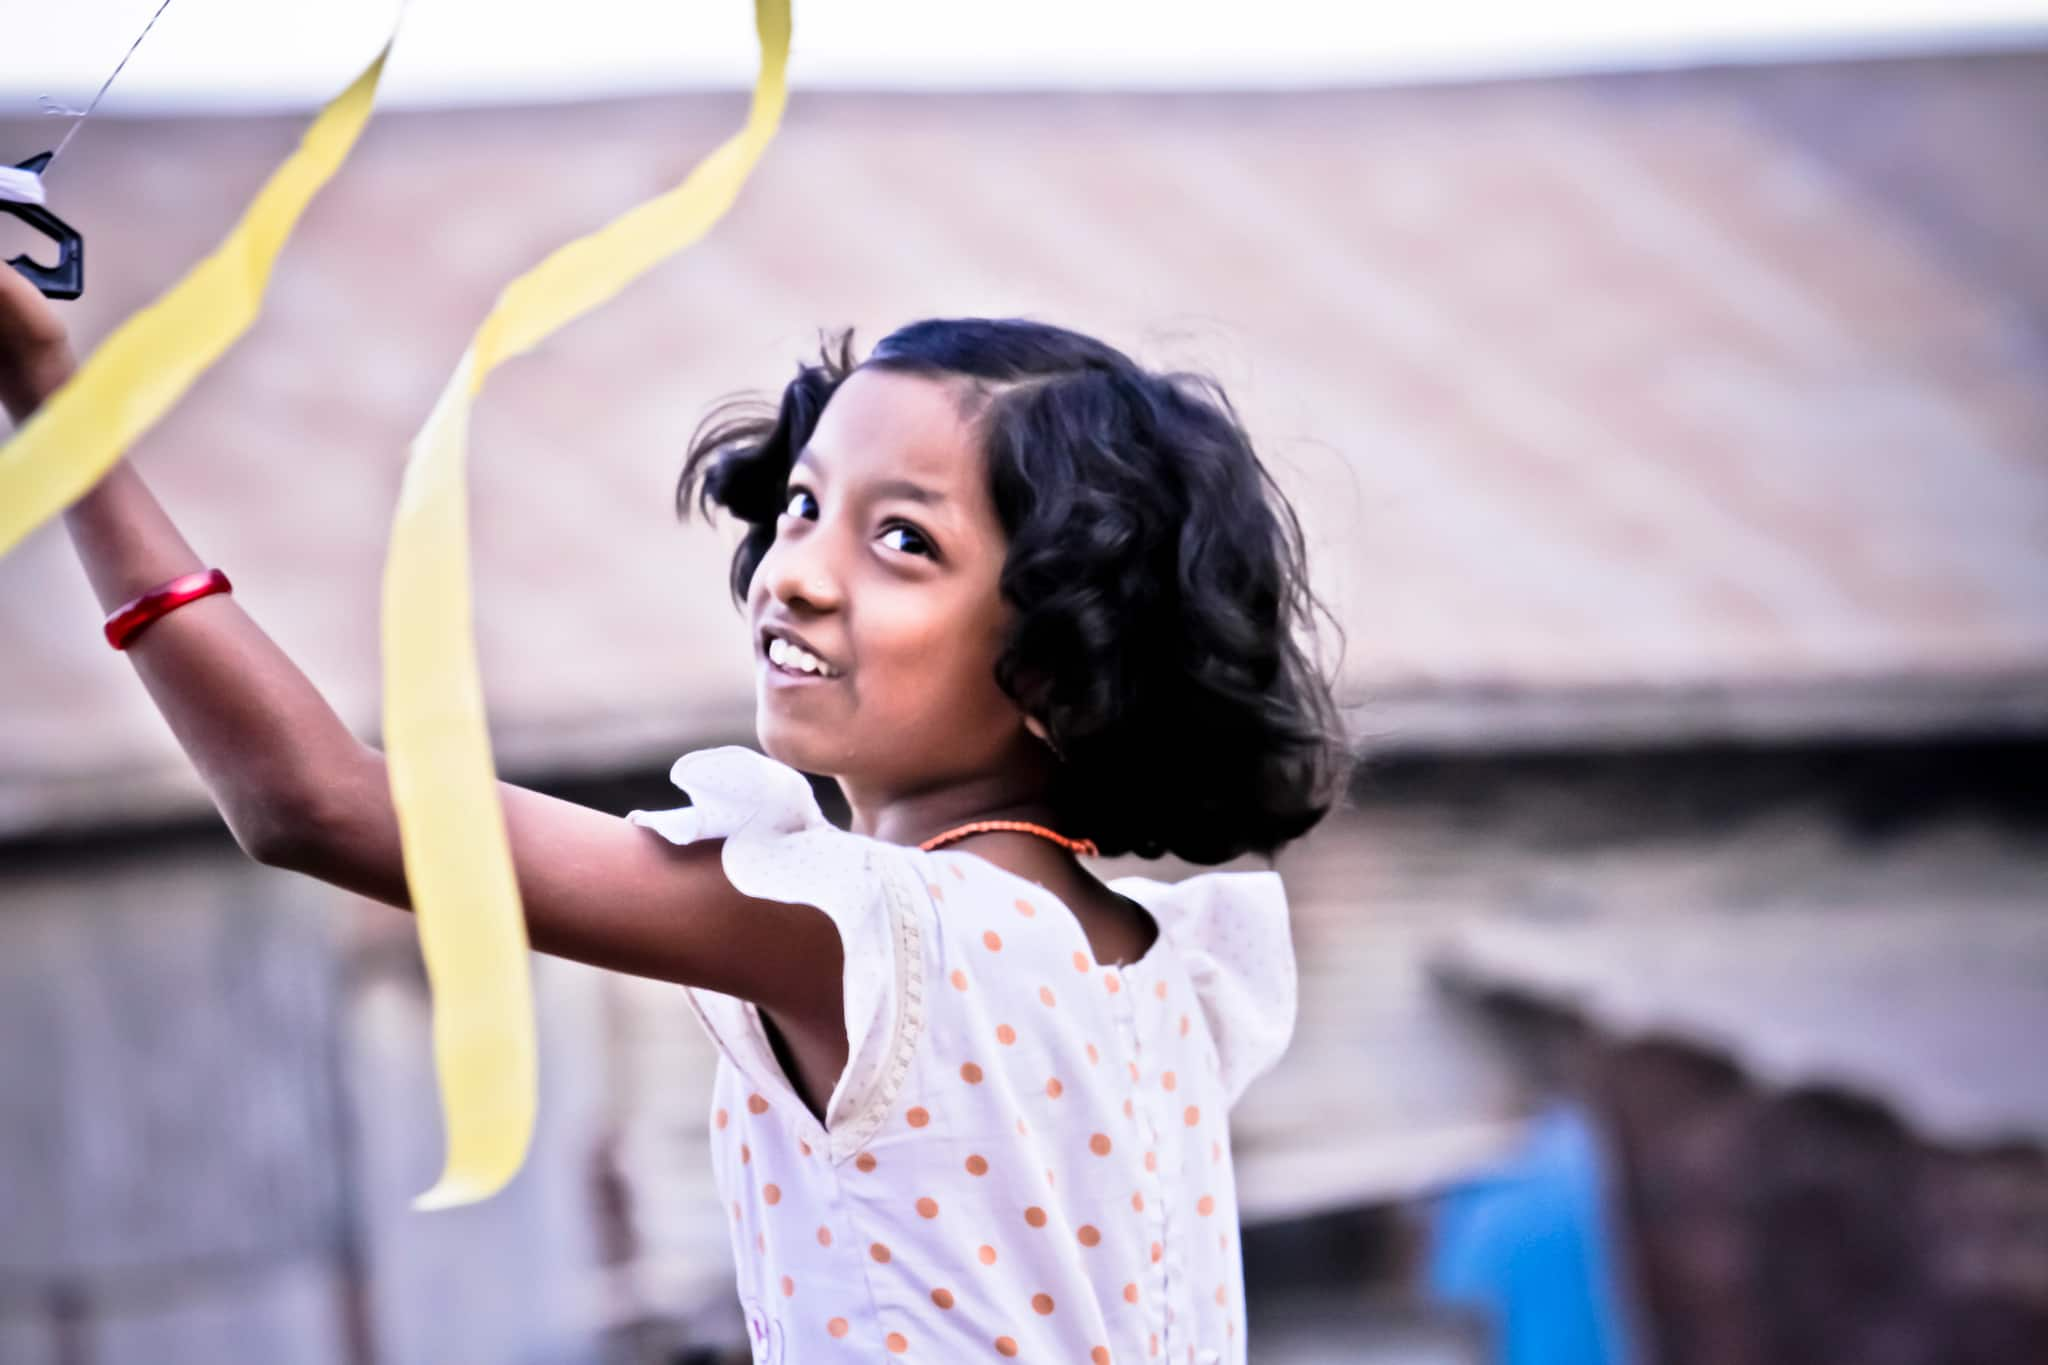 Girl looking up at her kite with yellow tails.